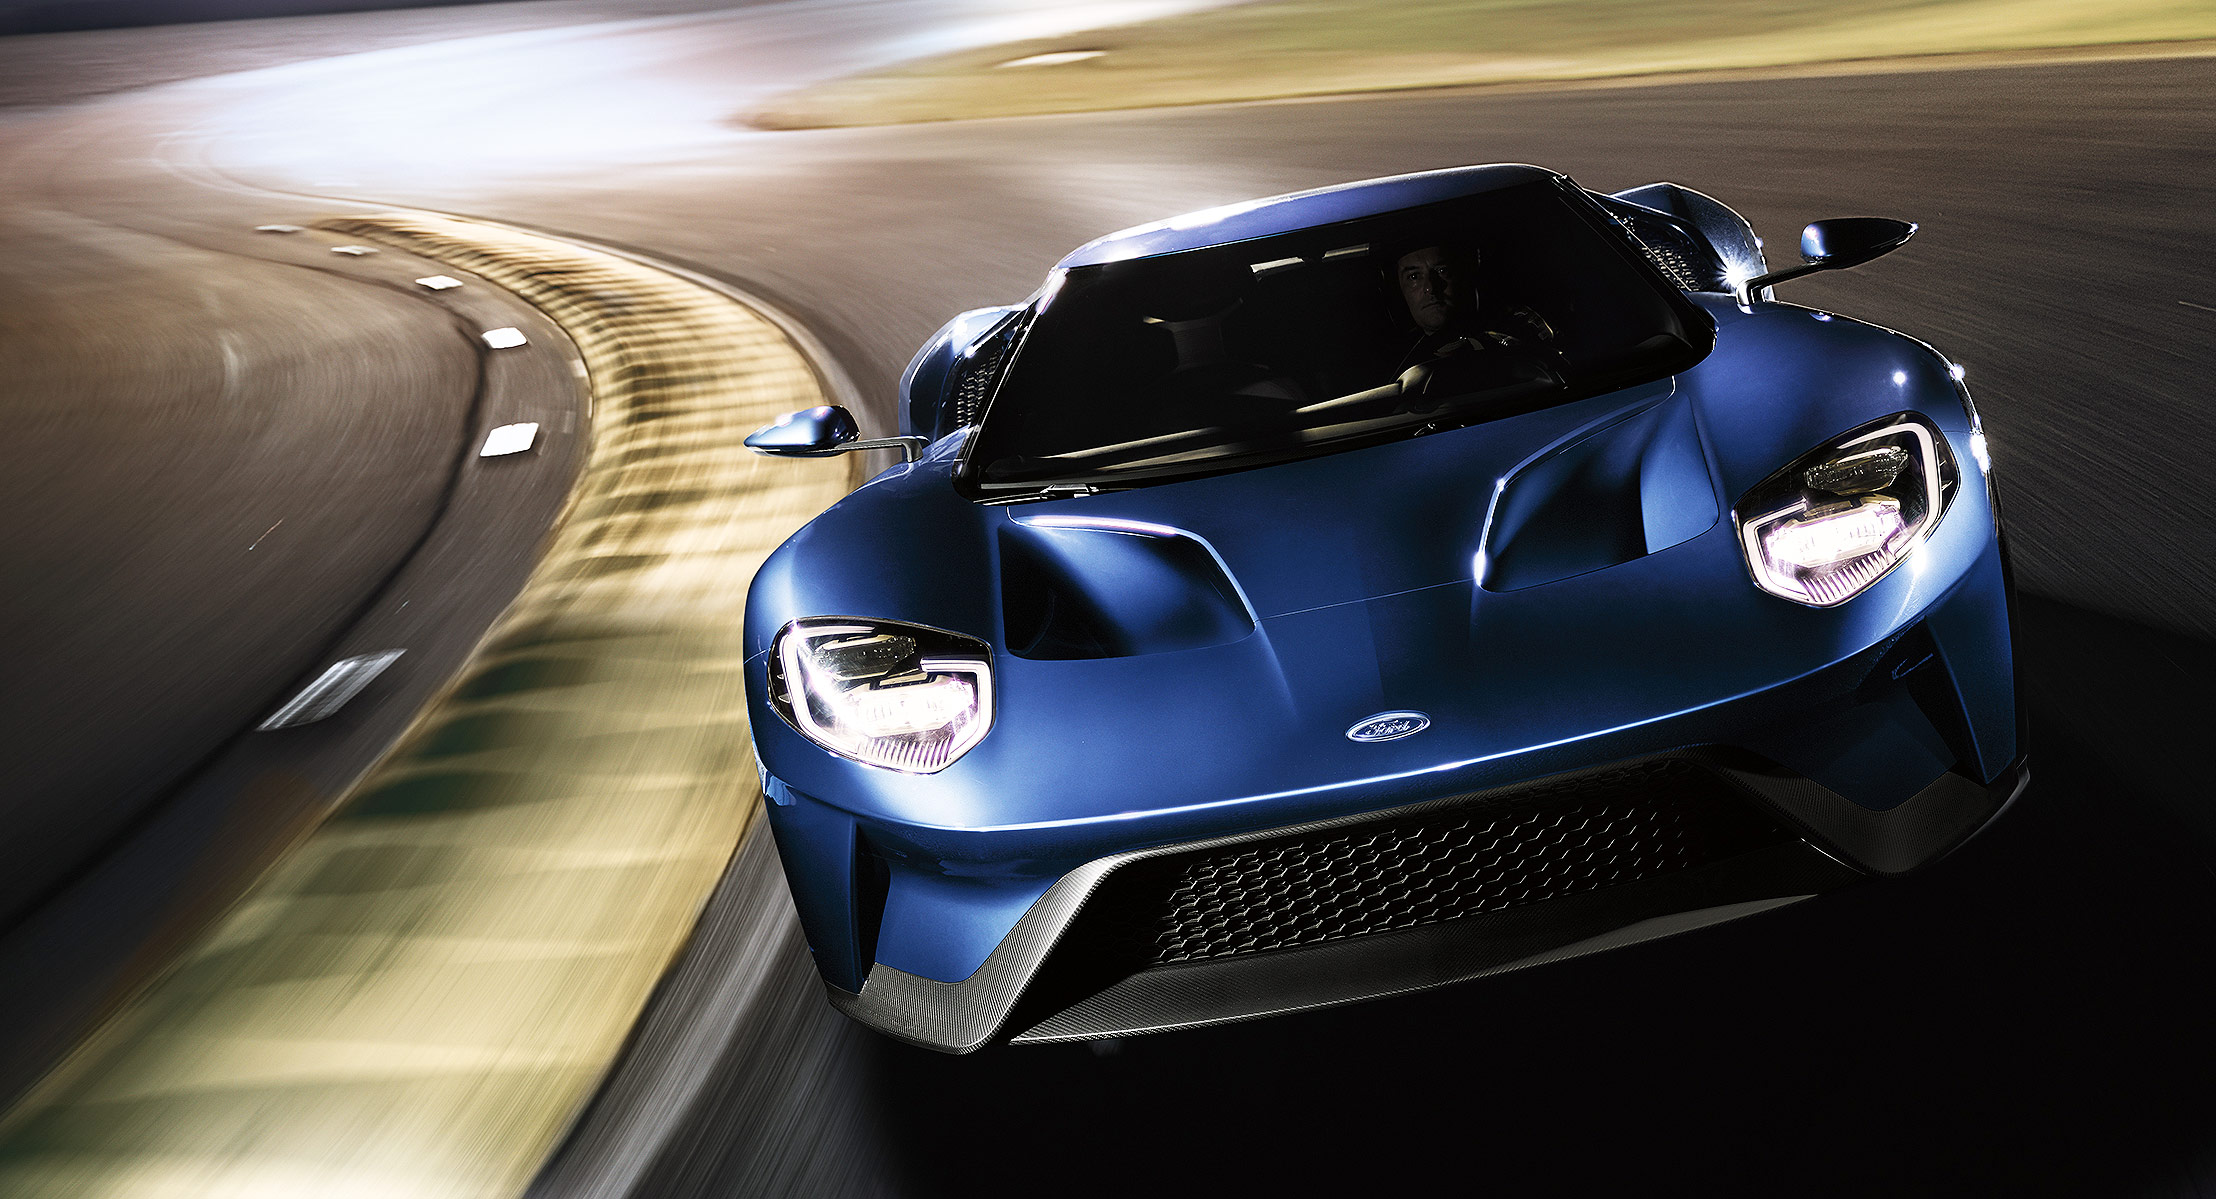 Is The Ford GT Quicker Than The 458 Speciale & 675LT On The Track?